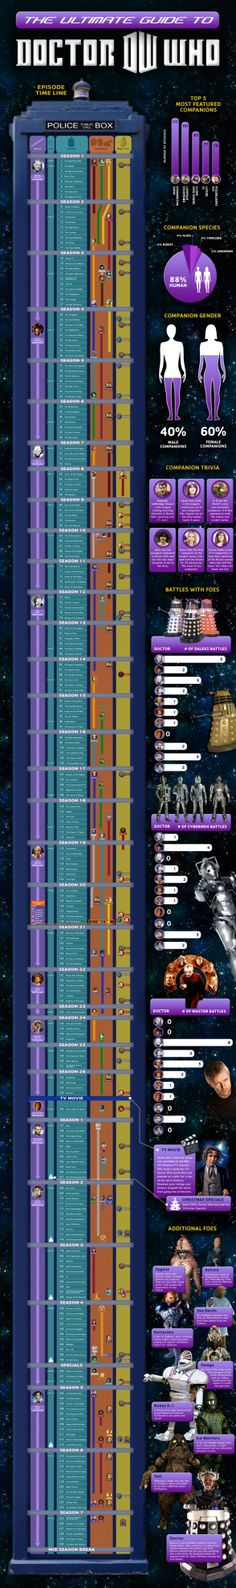 The Ultimate Guide to Doctor Who